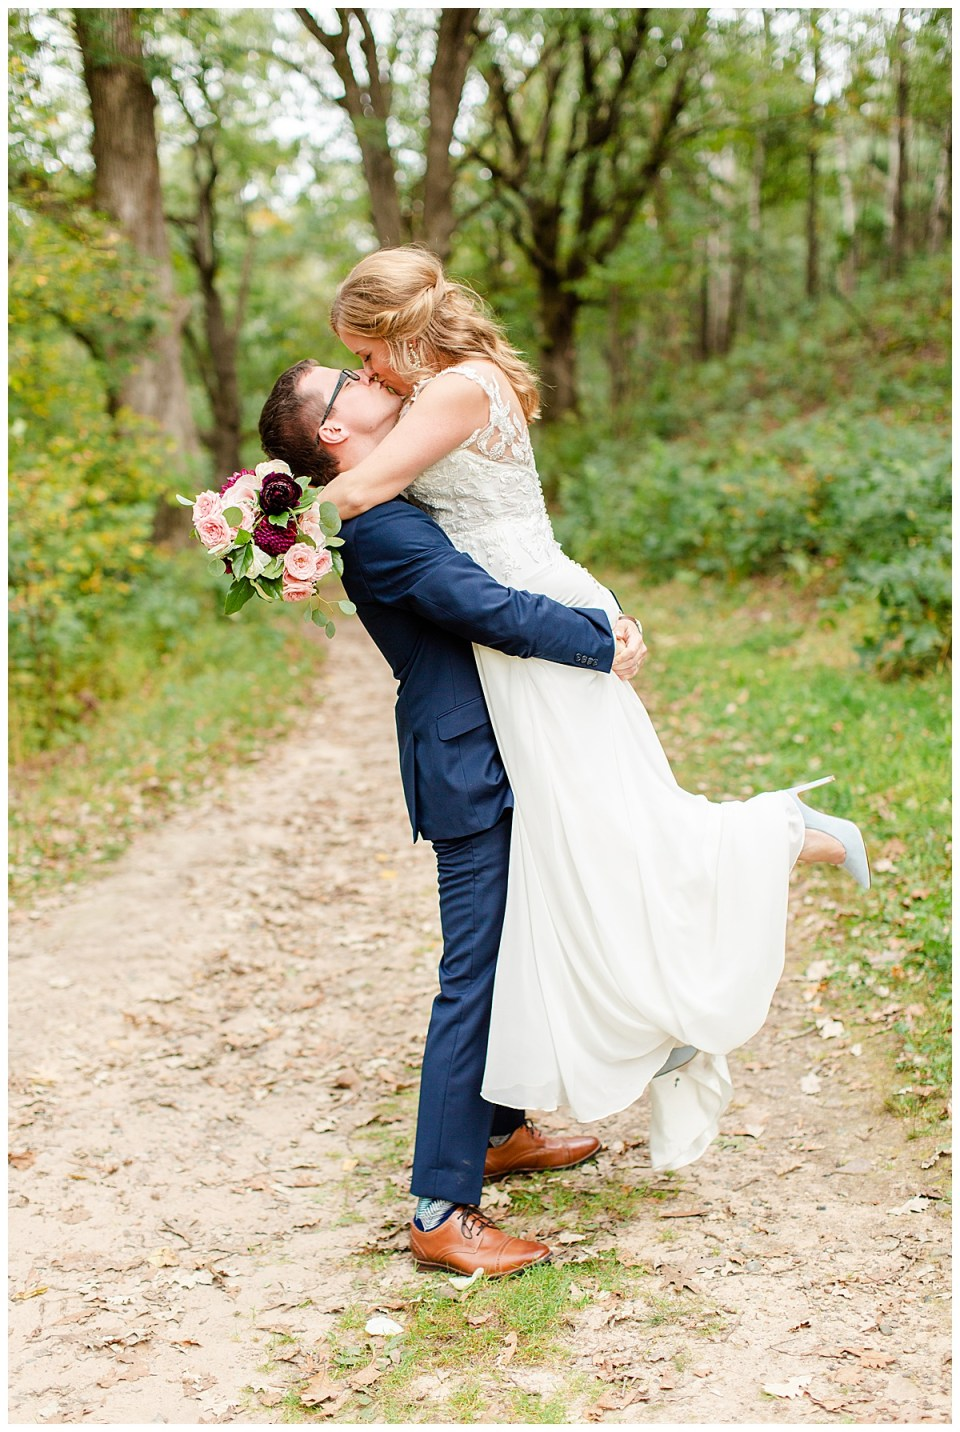 Romantic pose of bride and groom kissing at Lebanon Hills Park in Eagan, MN